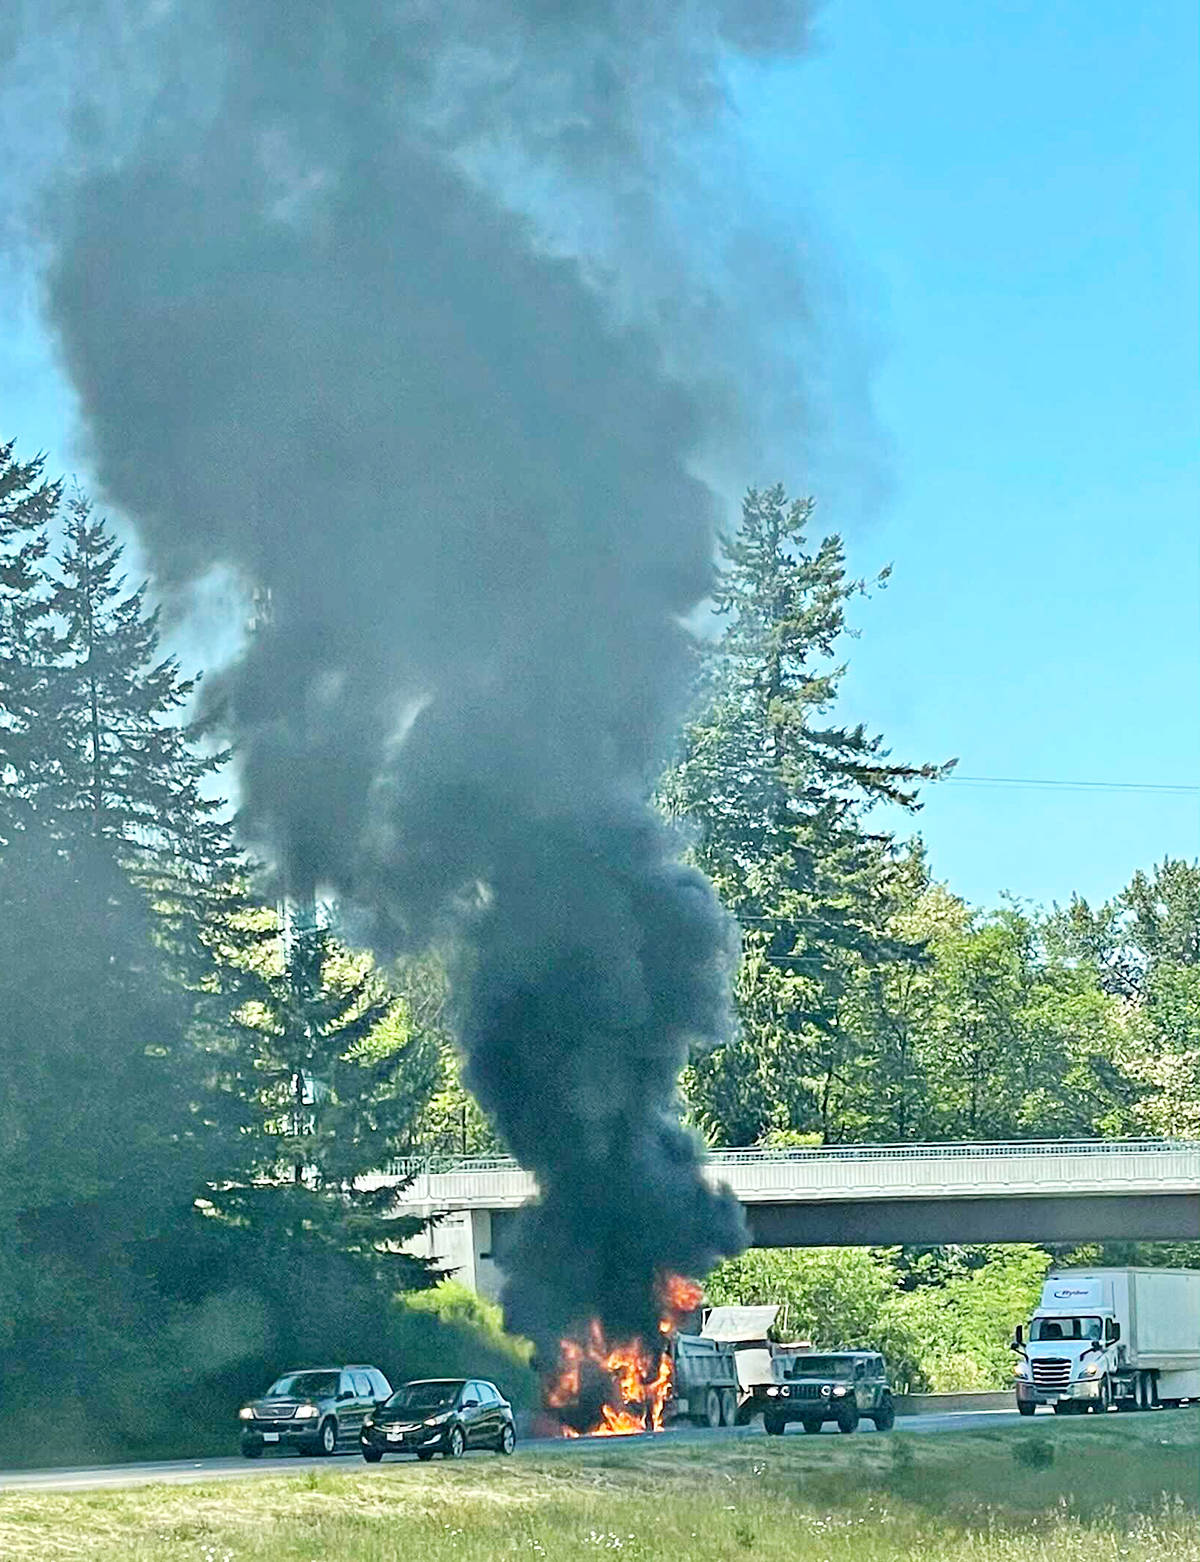 Township fire crews responded to a truck fire on Highway 1 at 248th Street on Tuesday afternoon. (Submitted photo: Jenna Caul-Zillich)